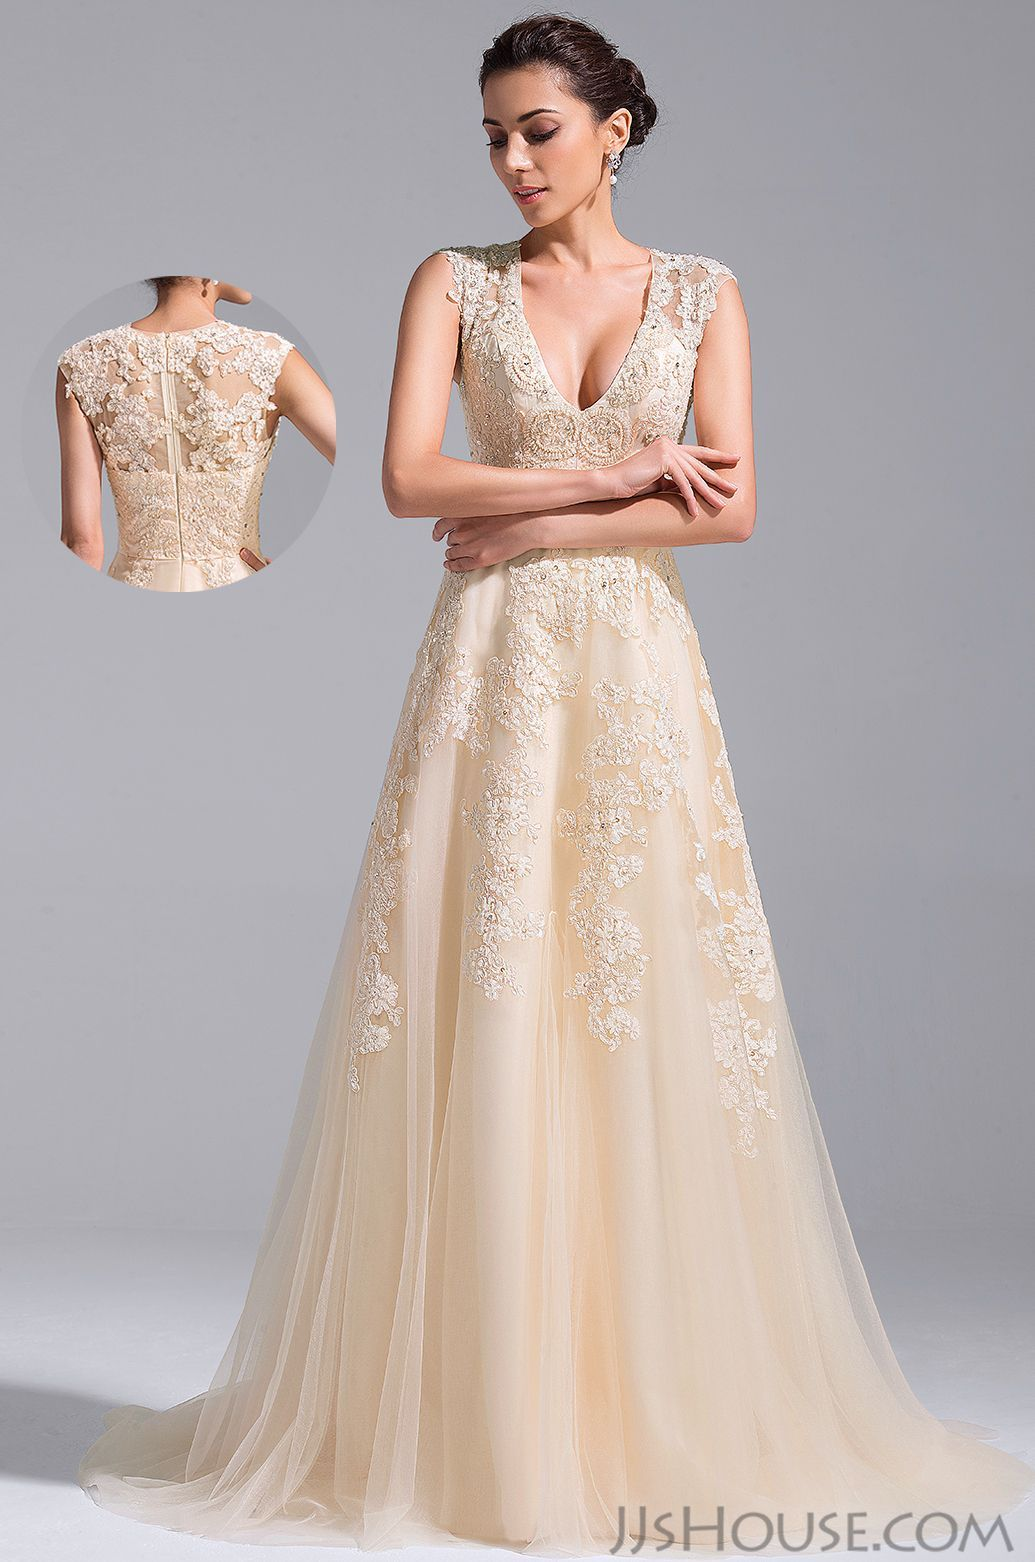 Big girl wedding dresses  The Vneck wedding dress will be perfect for your big day JJsHouse